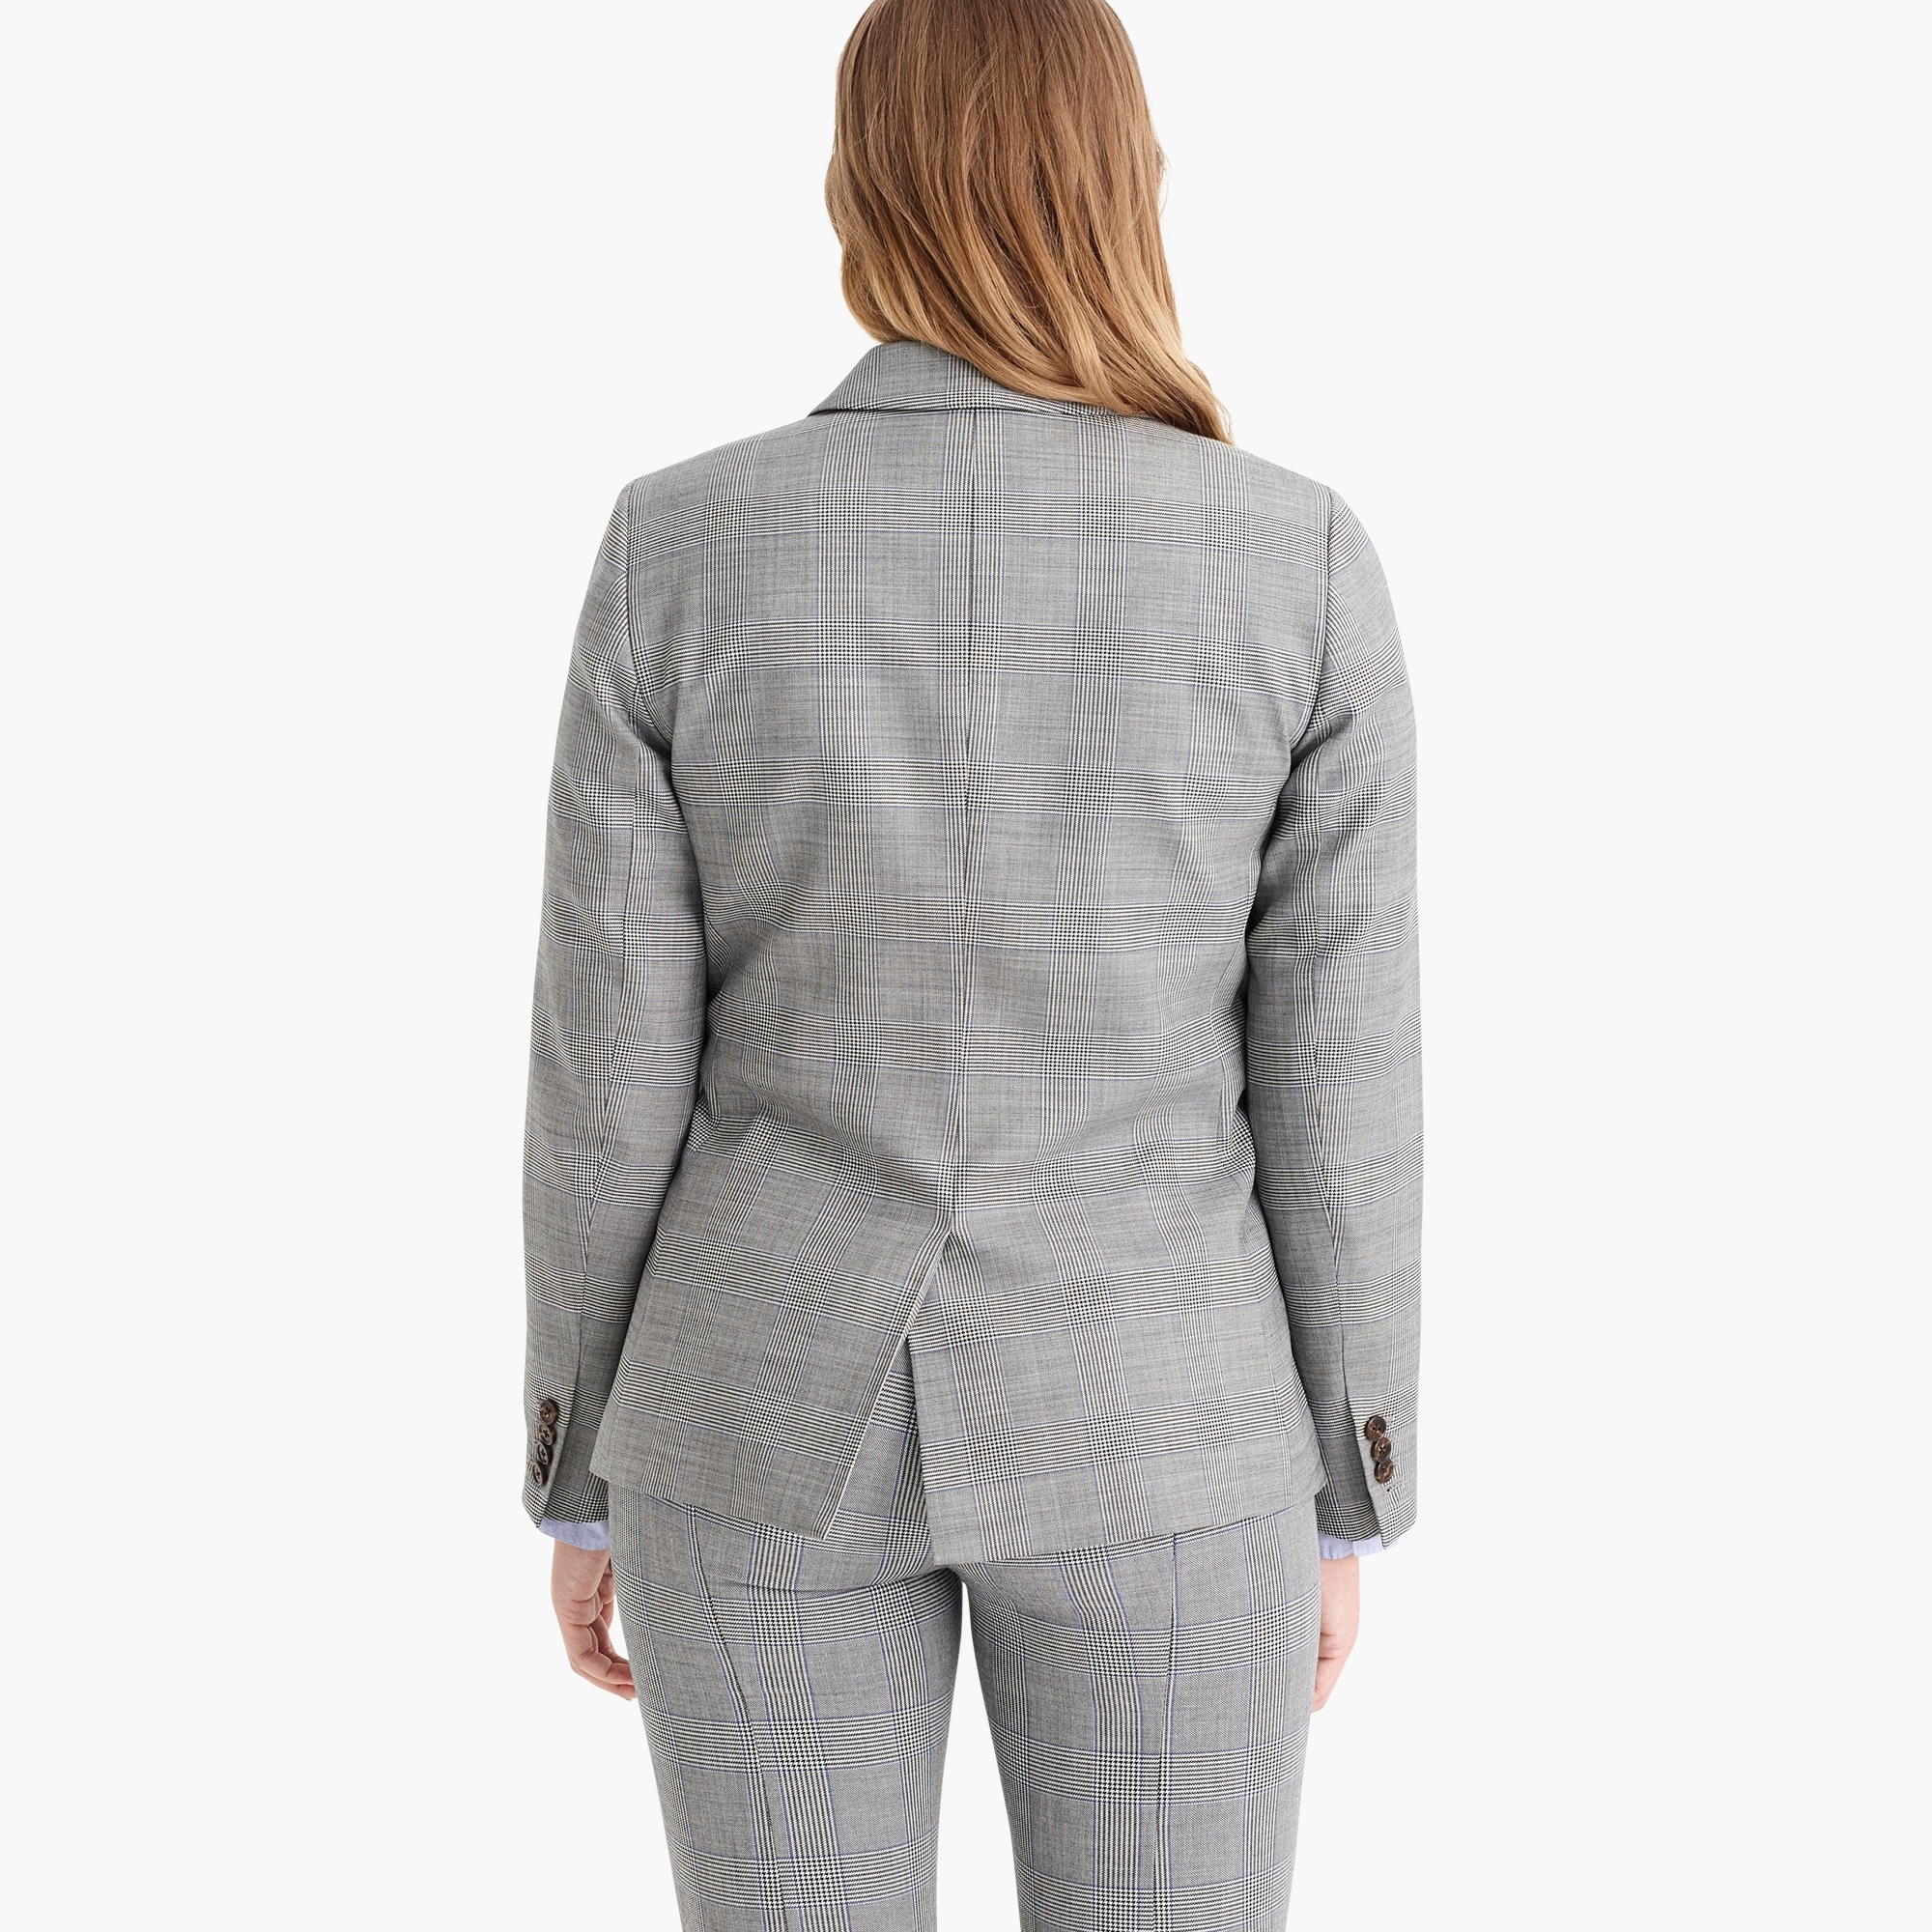 Ruffle-pocket blazer in glen plaid